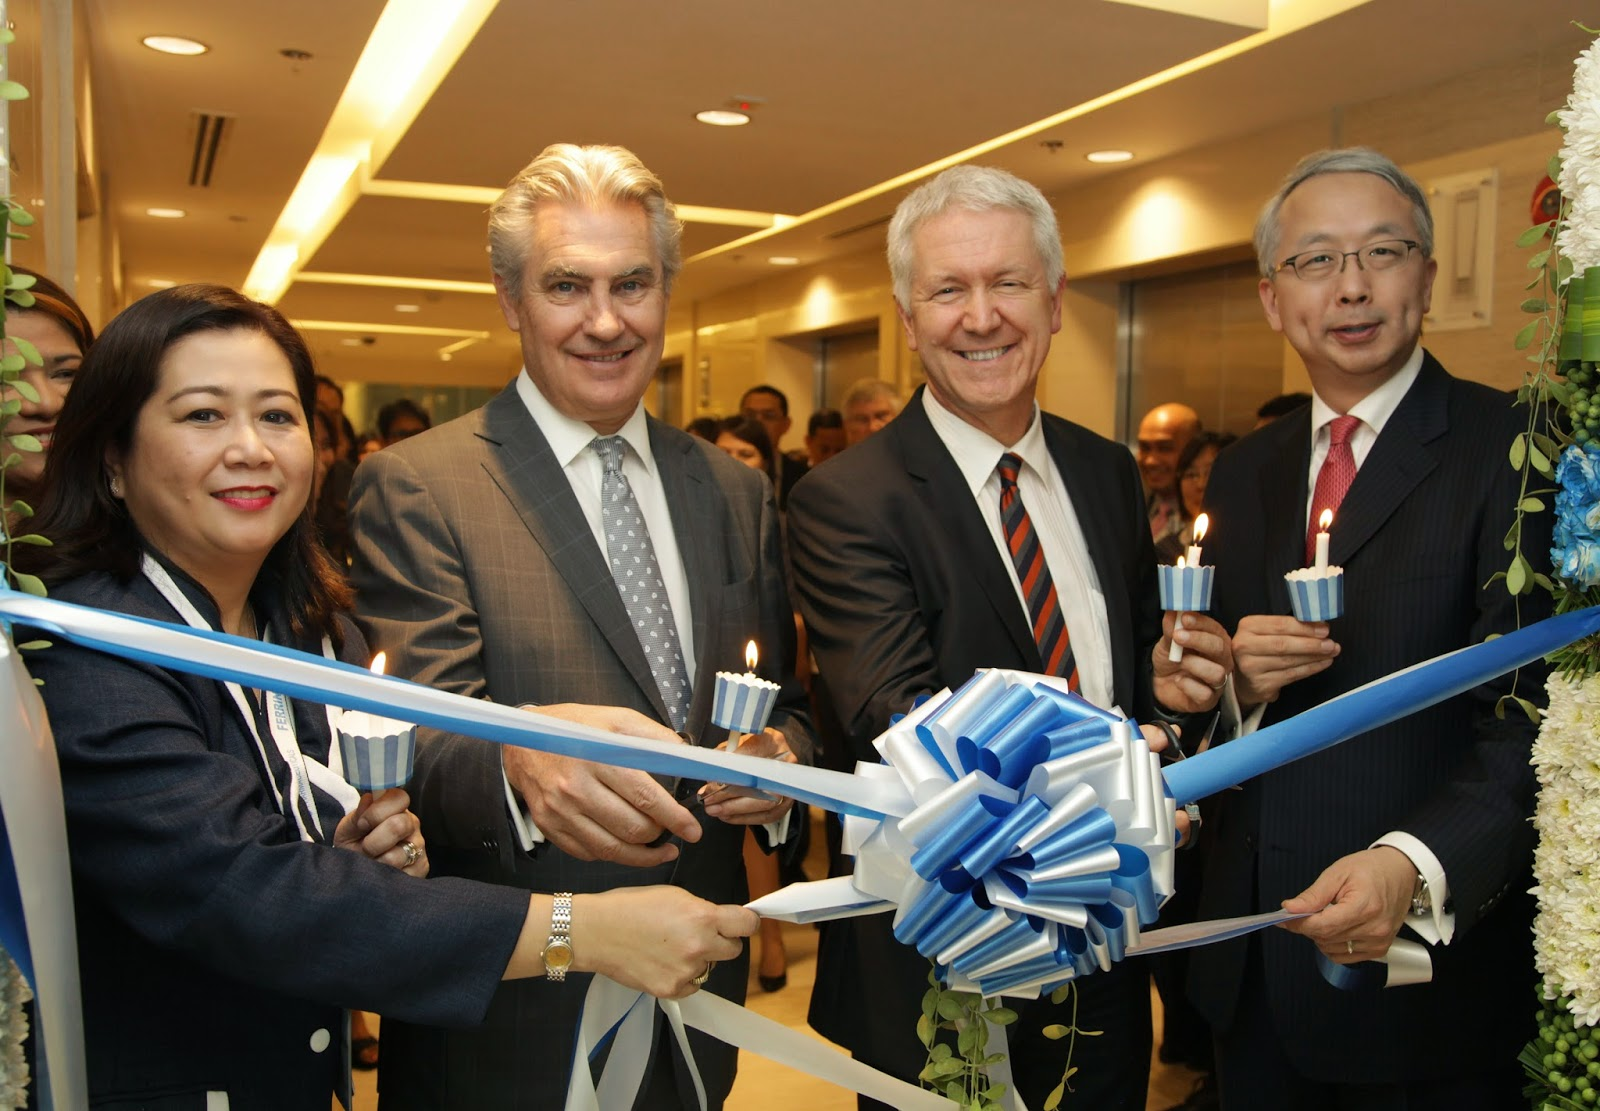 Jane Villablanca - GM Ferring PH, Michel Pettigrew - Pres and COO of Ferring, Ivo Sieber - Swiss Ambassador and Alex Chang - Senior Vice President of Ferring Asia Pacific